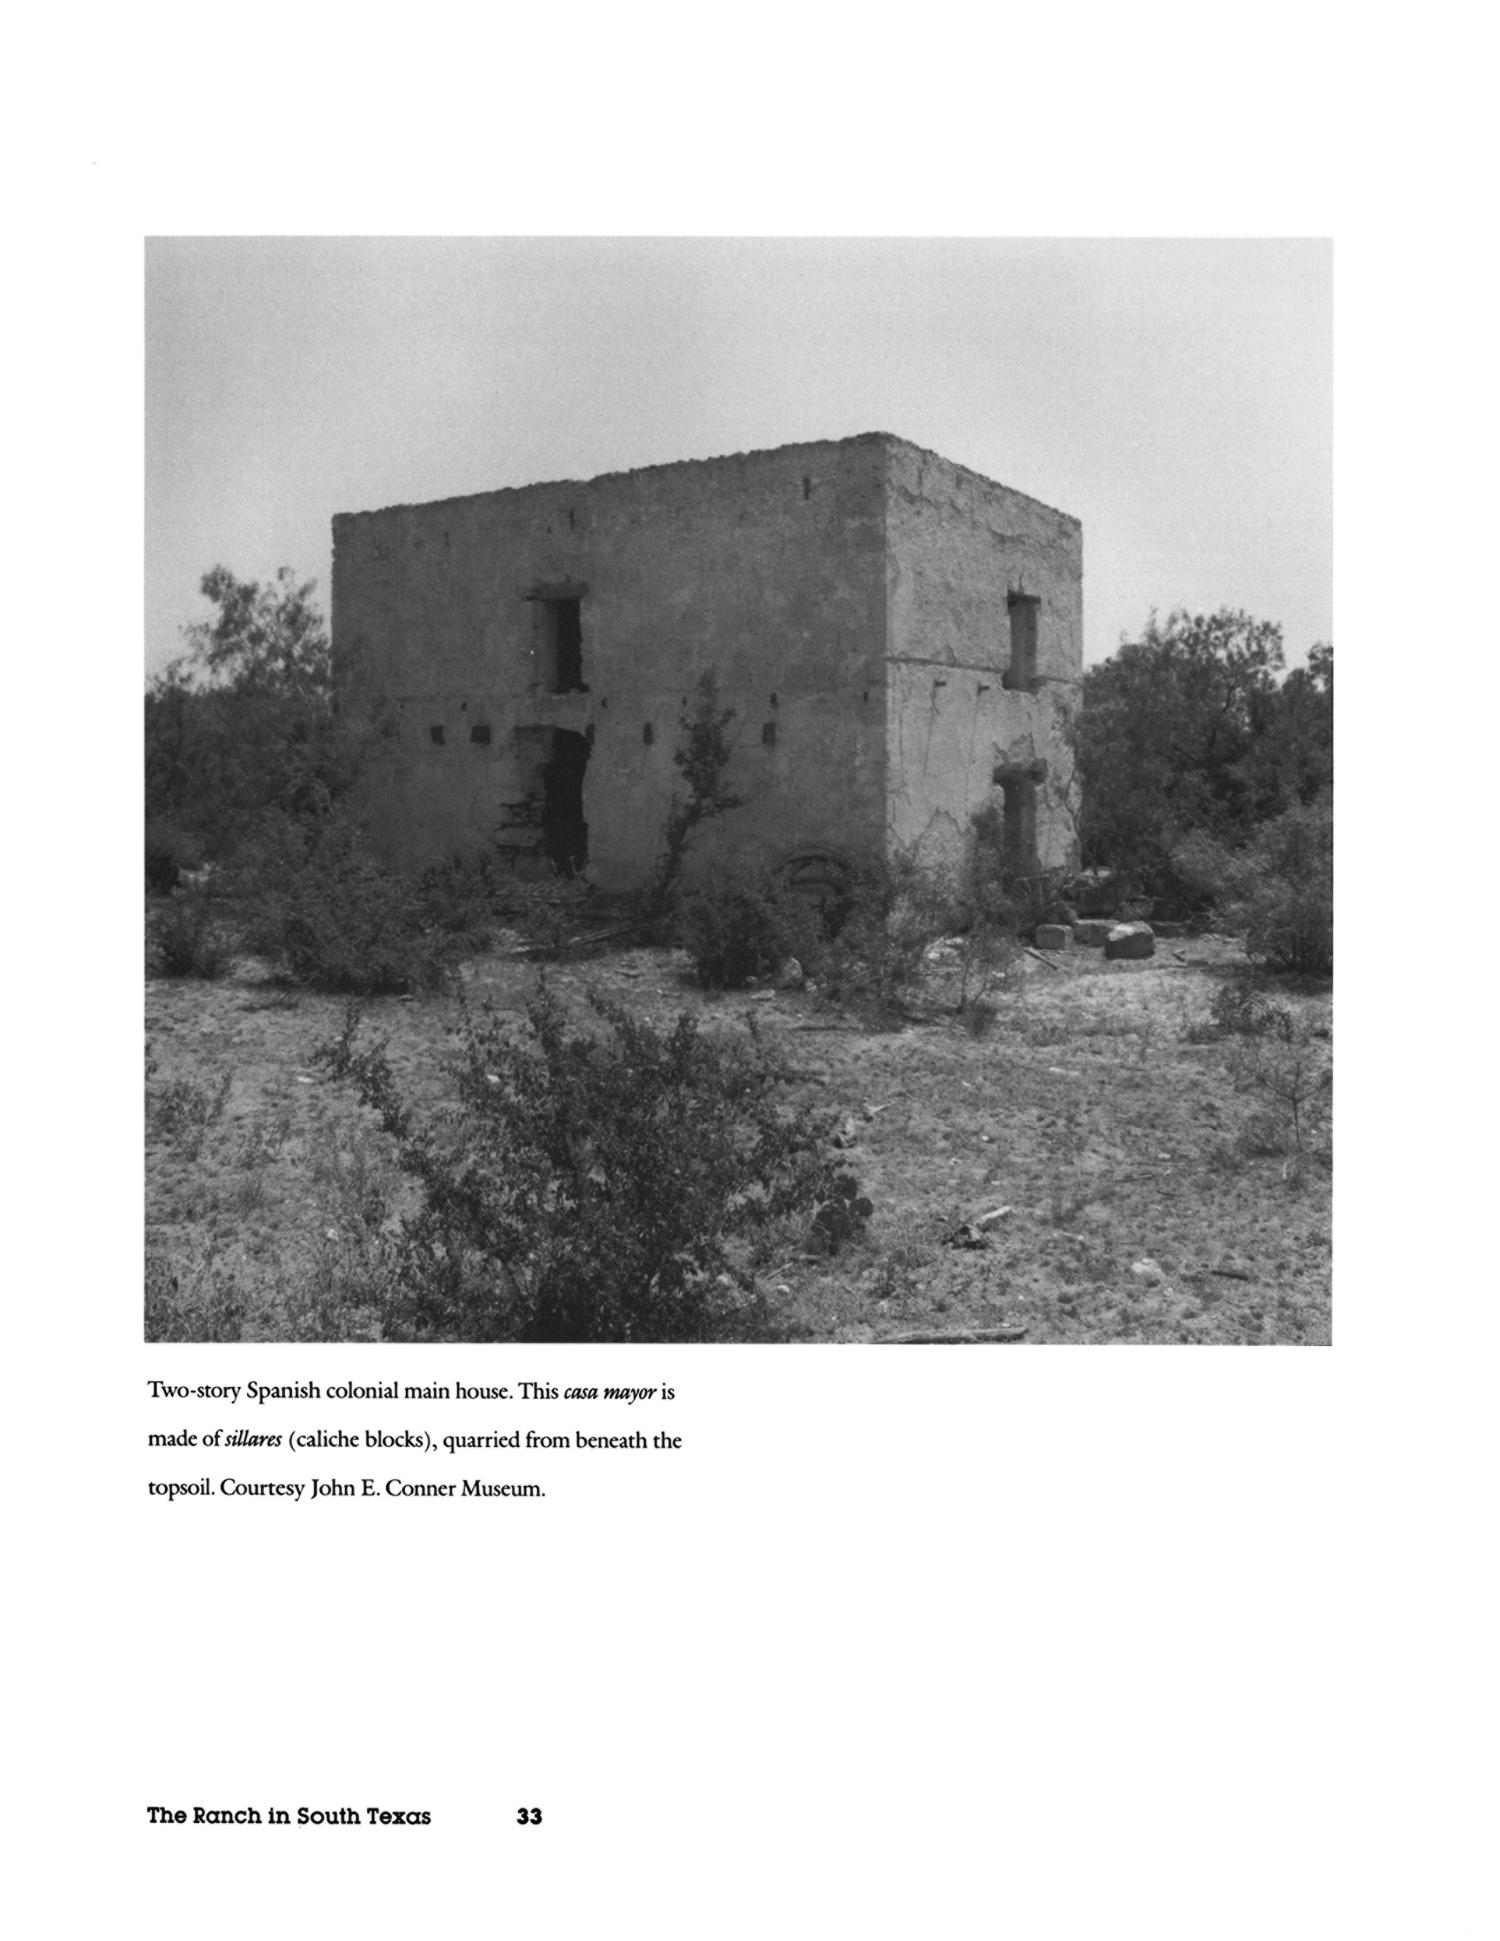 El Rancho in South Texas: Continuity and Change From 1750                                                                                                      33